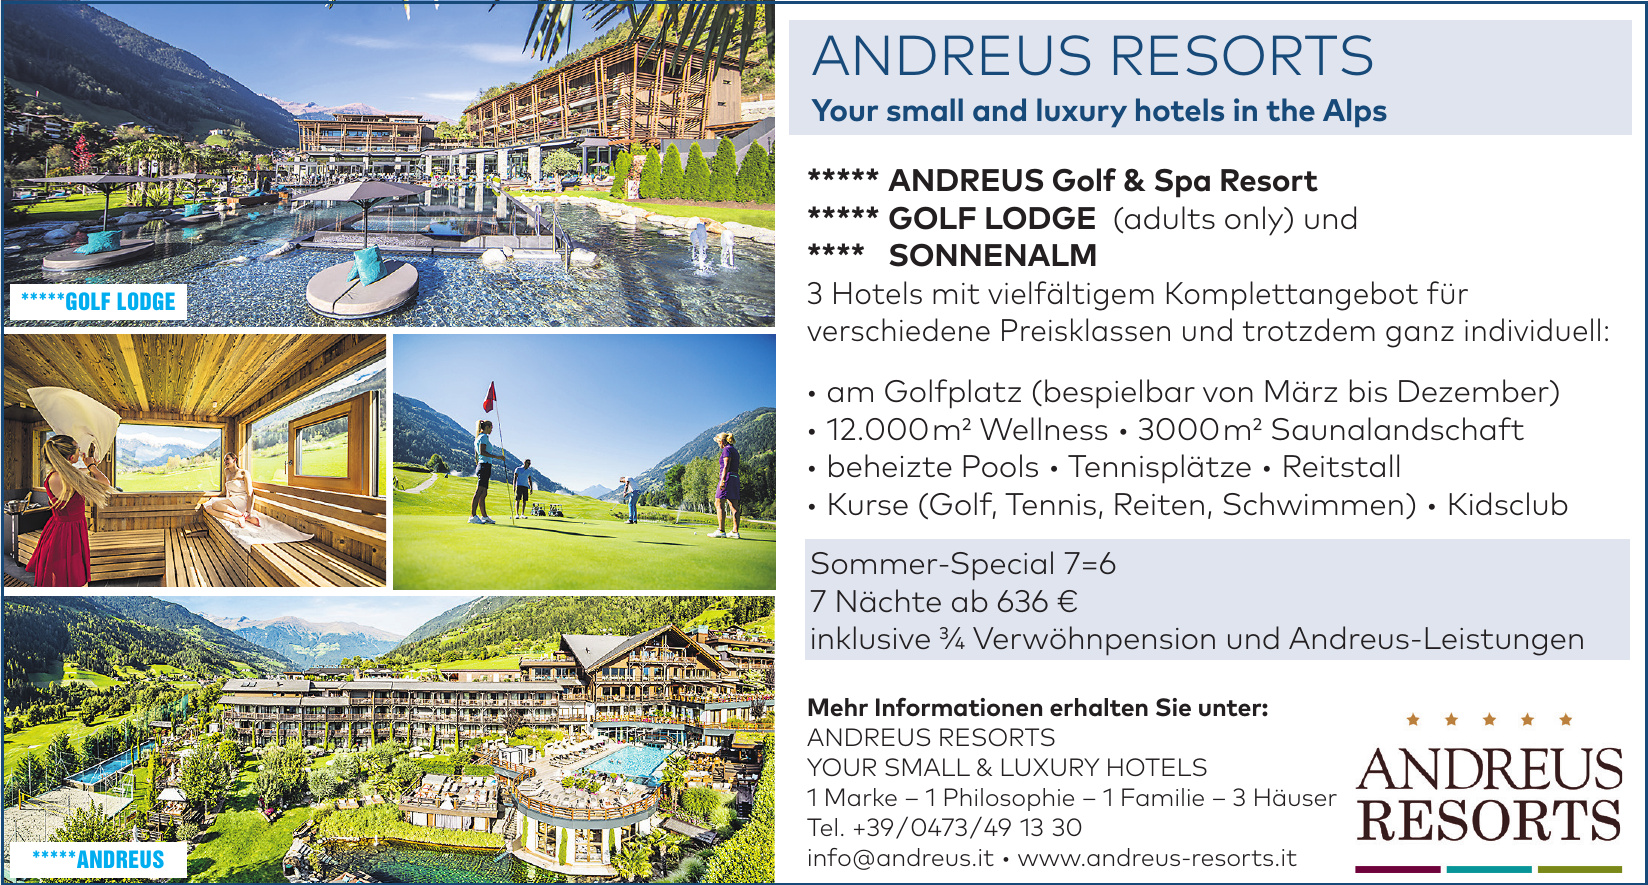 ANDREUS RESORTS YOUR SMALL & LUXURY HOTELS